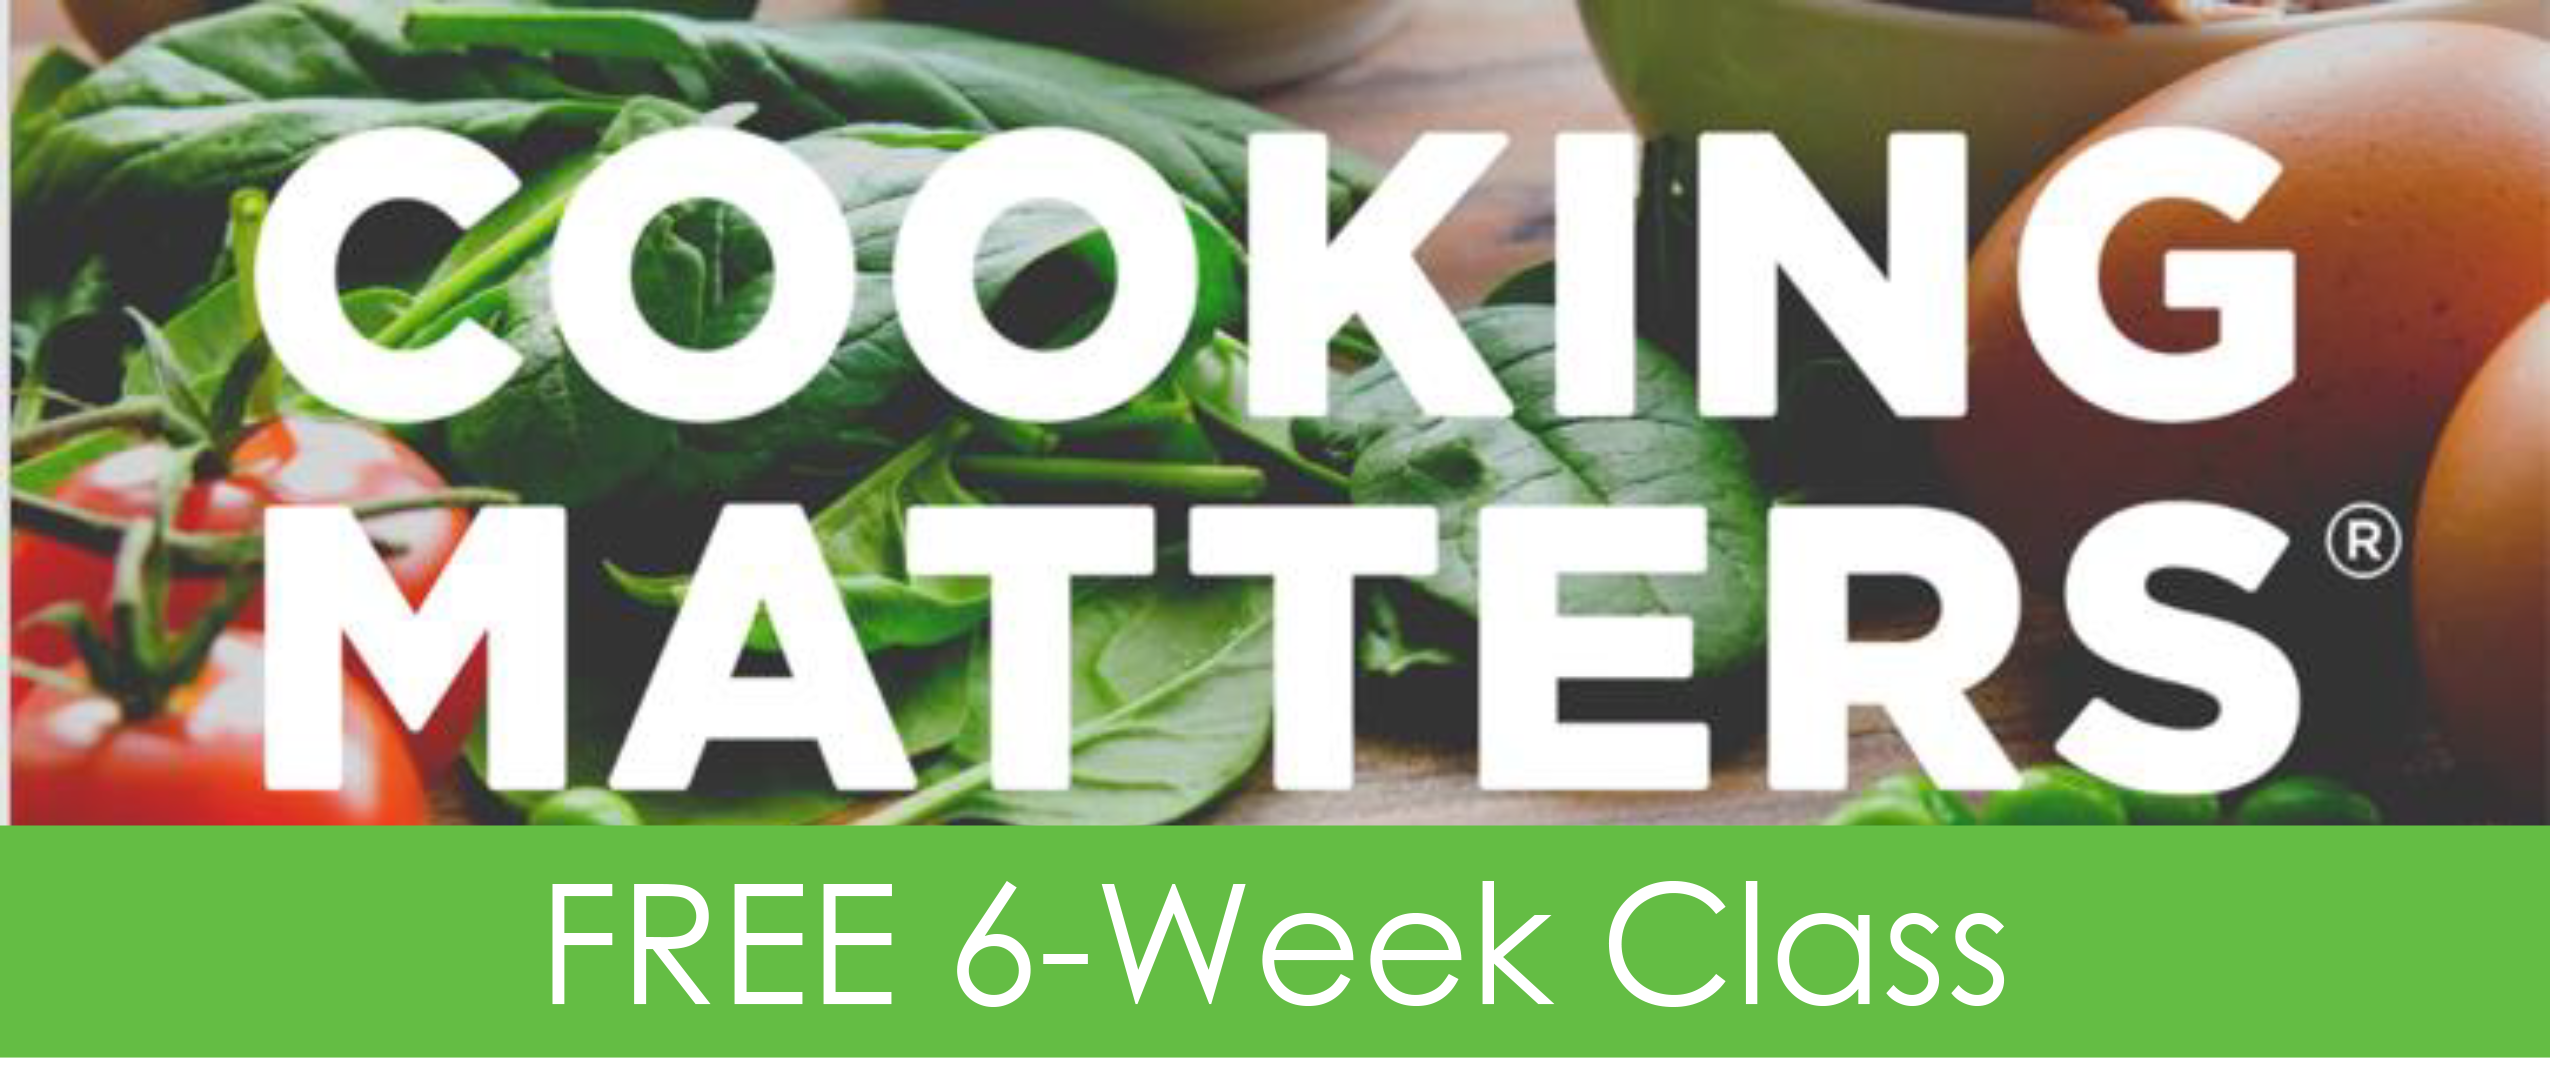 Cooking Matters with Lowcountry Food Bank